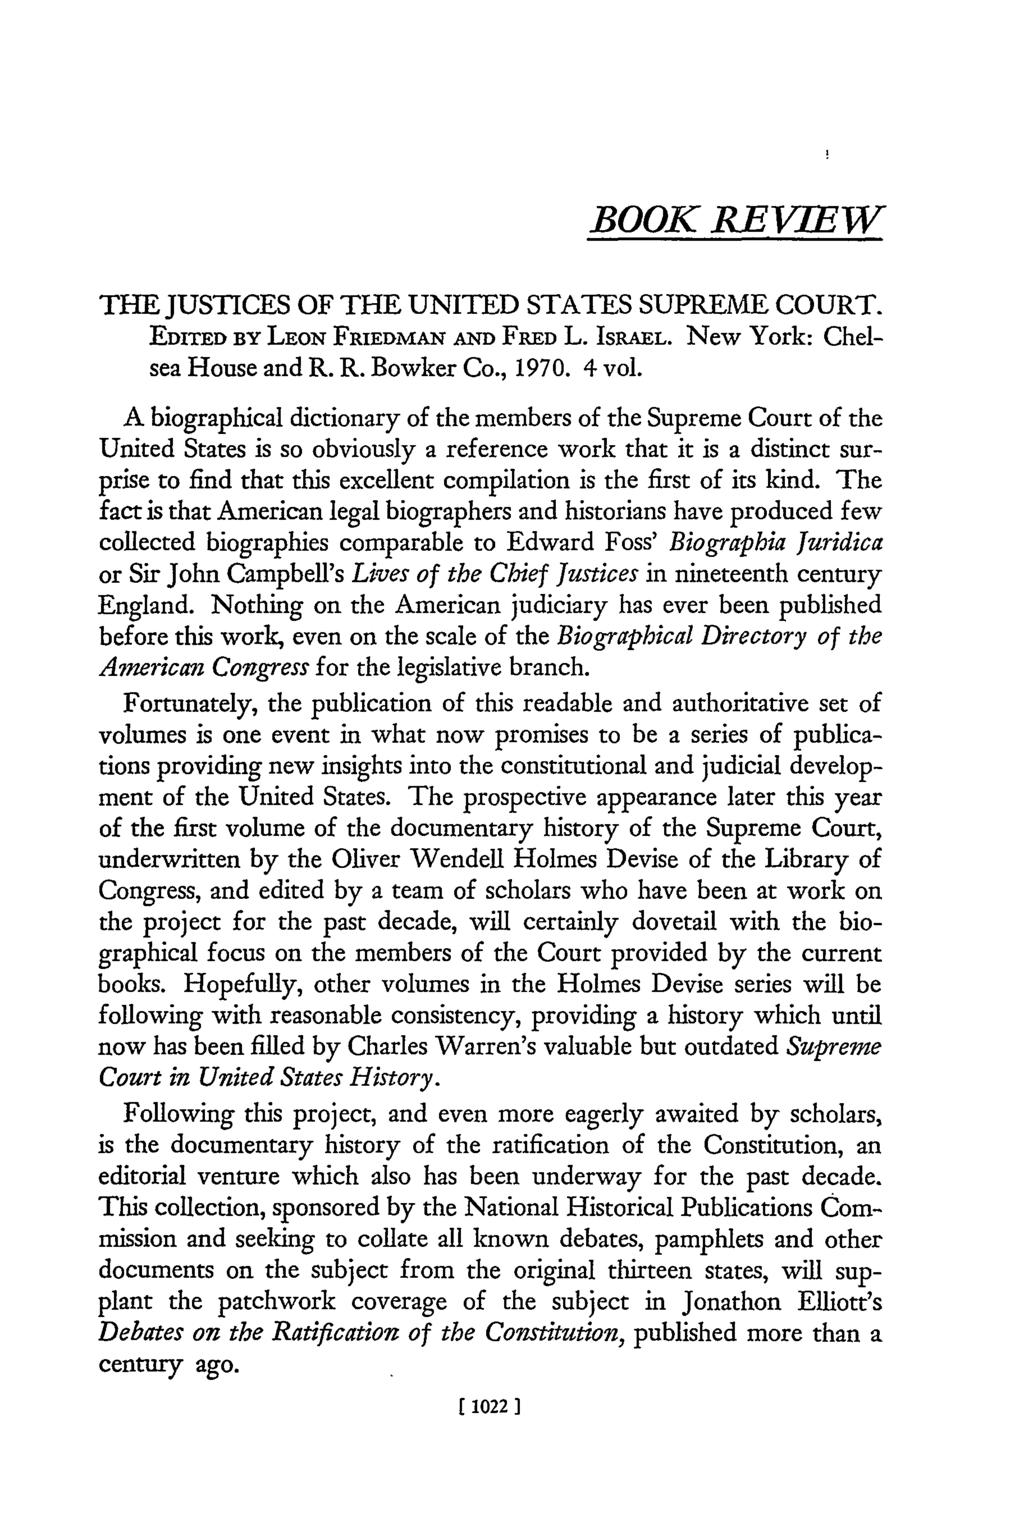 BOOK REVIEW THE JUSTICES OF THE UNITED STATES SUPREME COURT. EDITED BY LEON FRIEDMAN AND FRED L. ISRAEL. New York: Chelsea House and R. R. Bowker Co., 1970. 4 vol.